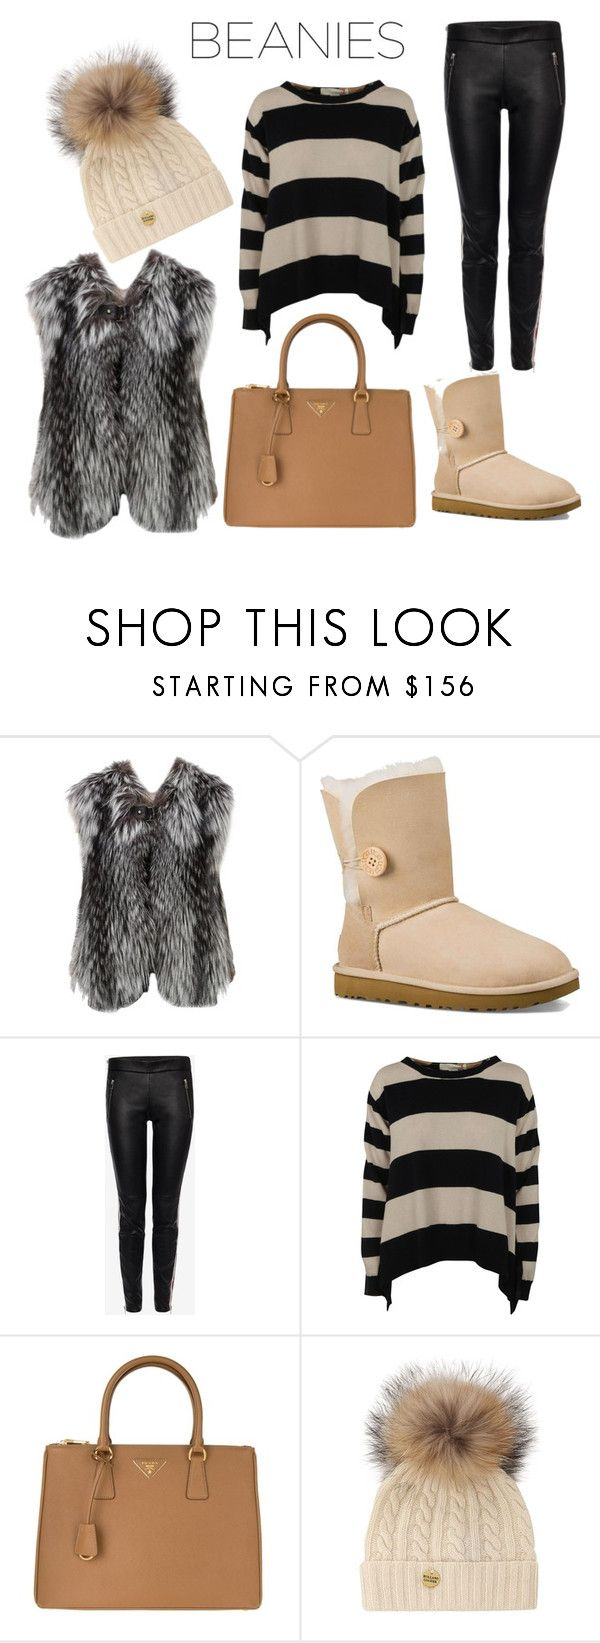 """Untitled #48"" by supysu ❤ liked on Polyvore featuring Louis Vuitton, UGG Australia, Alexander McQueen, STELLA McCARTNEY, Prada and Holland Cooper"